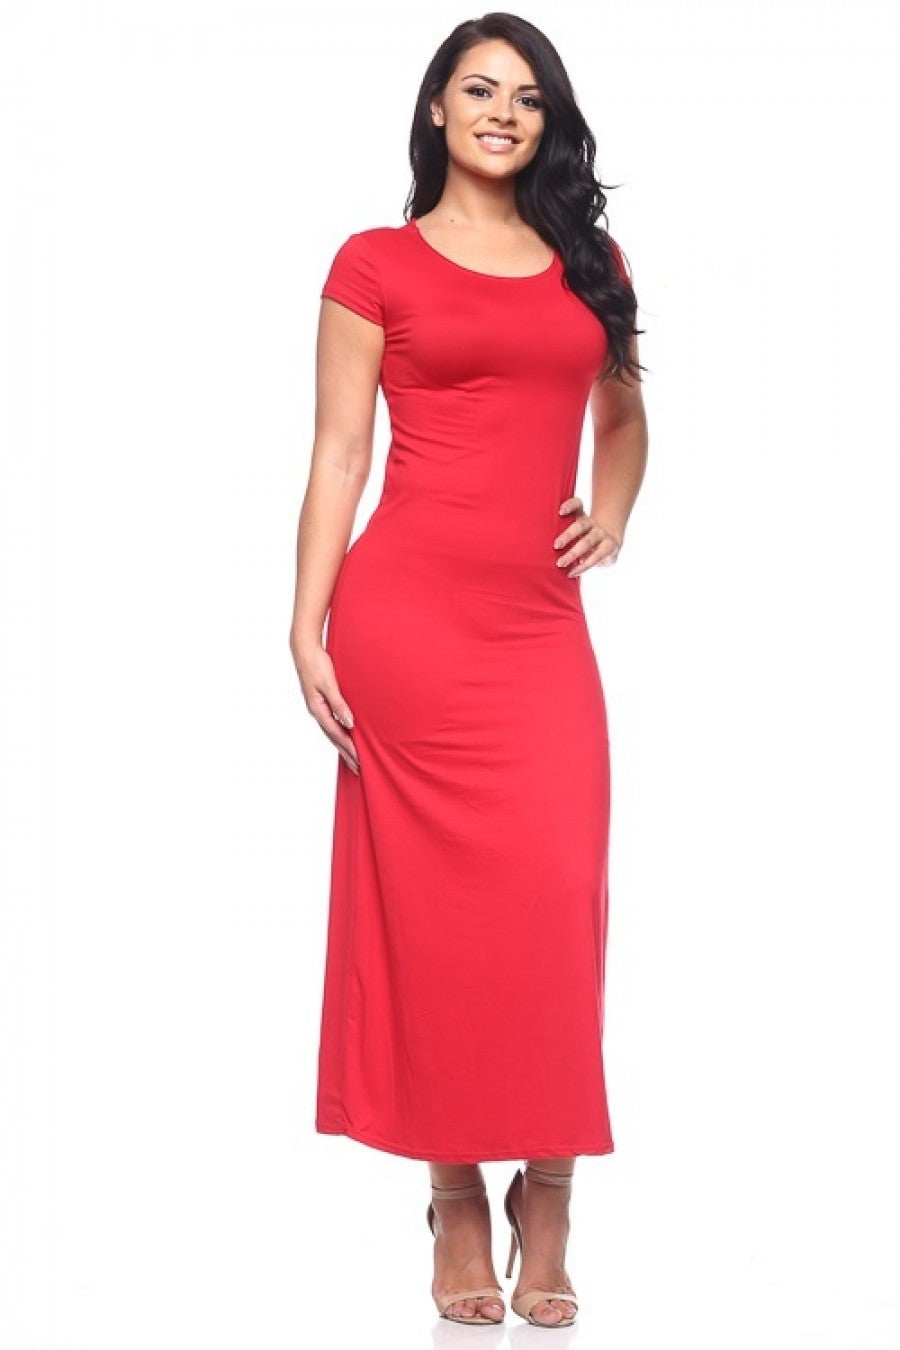 T-Shirt Maxi Dress Plus Size